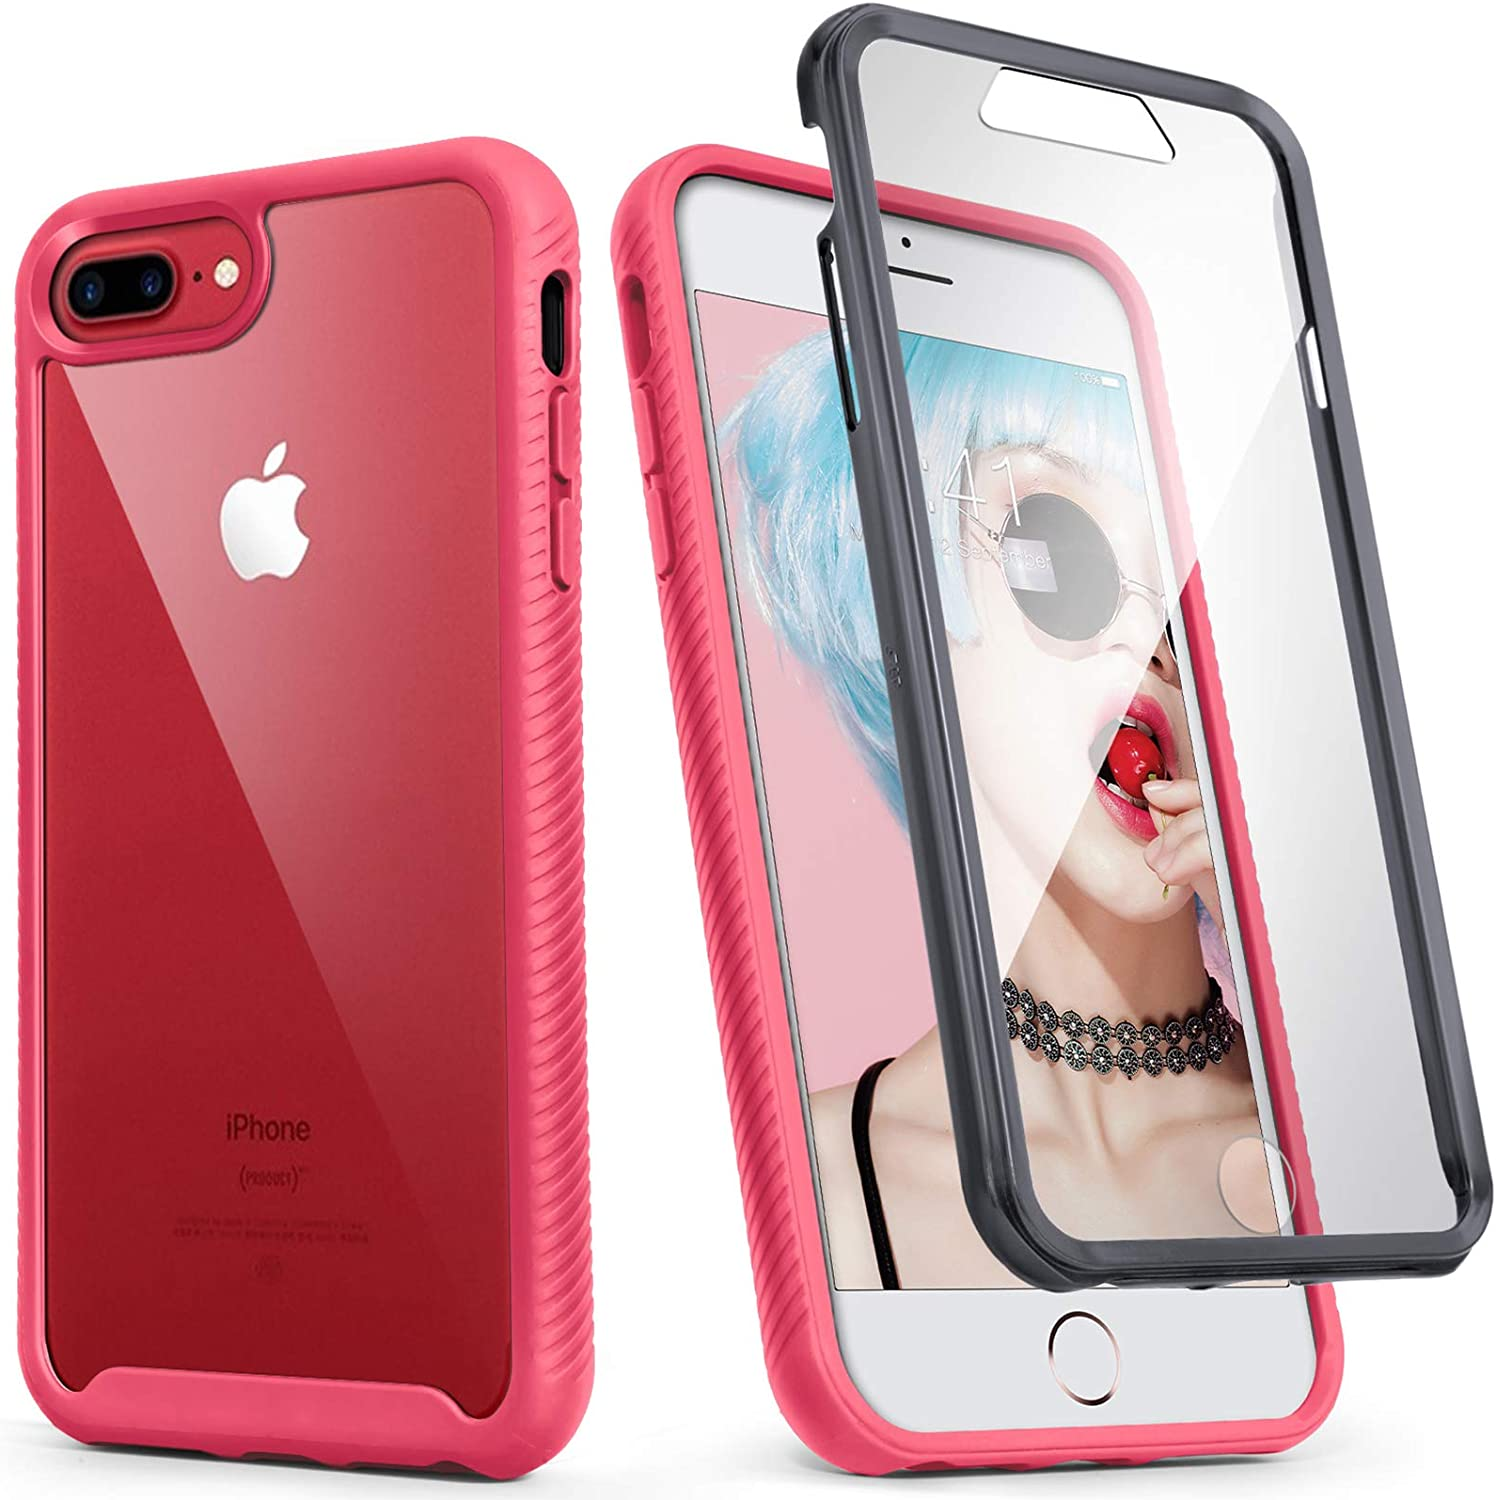 IDweel iPhone 8 Plus Case, iPhone 7 Plus Case, Full-Body Armor Shockproof Case with Build in Screen Protector Heavy Duty Shock Resistant Hybrid Rugged Cover for Apple iPhone 8 & 7 Plus 5.5 Inch, Rose